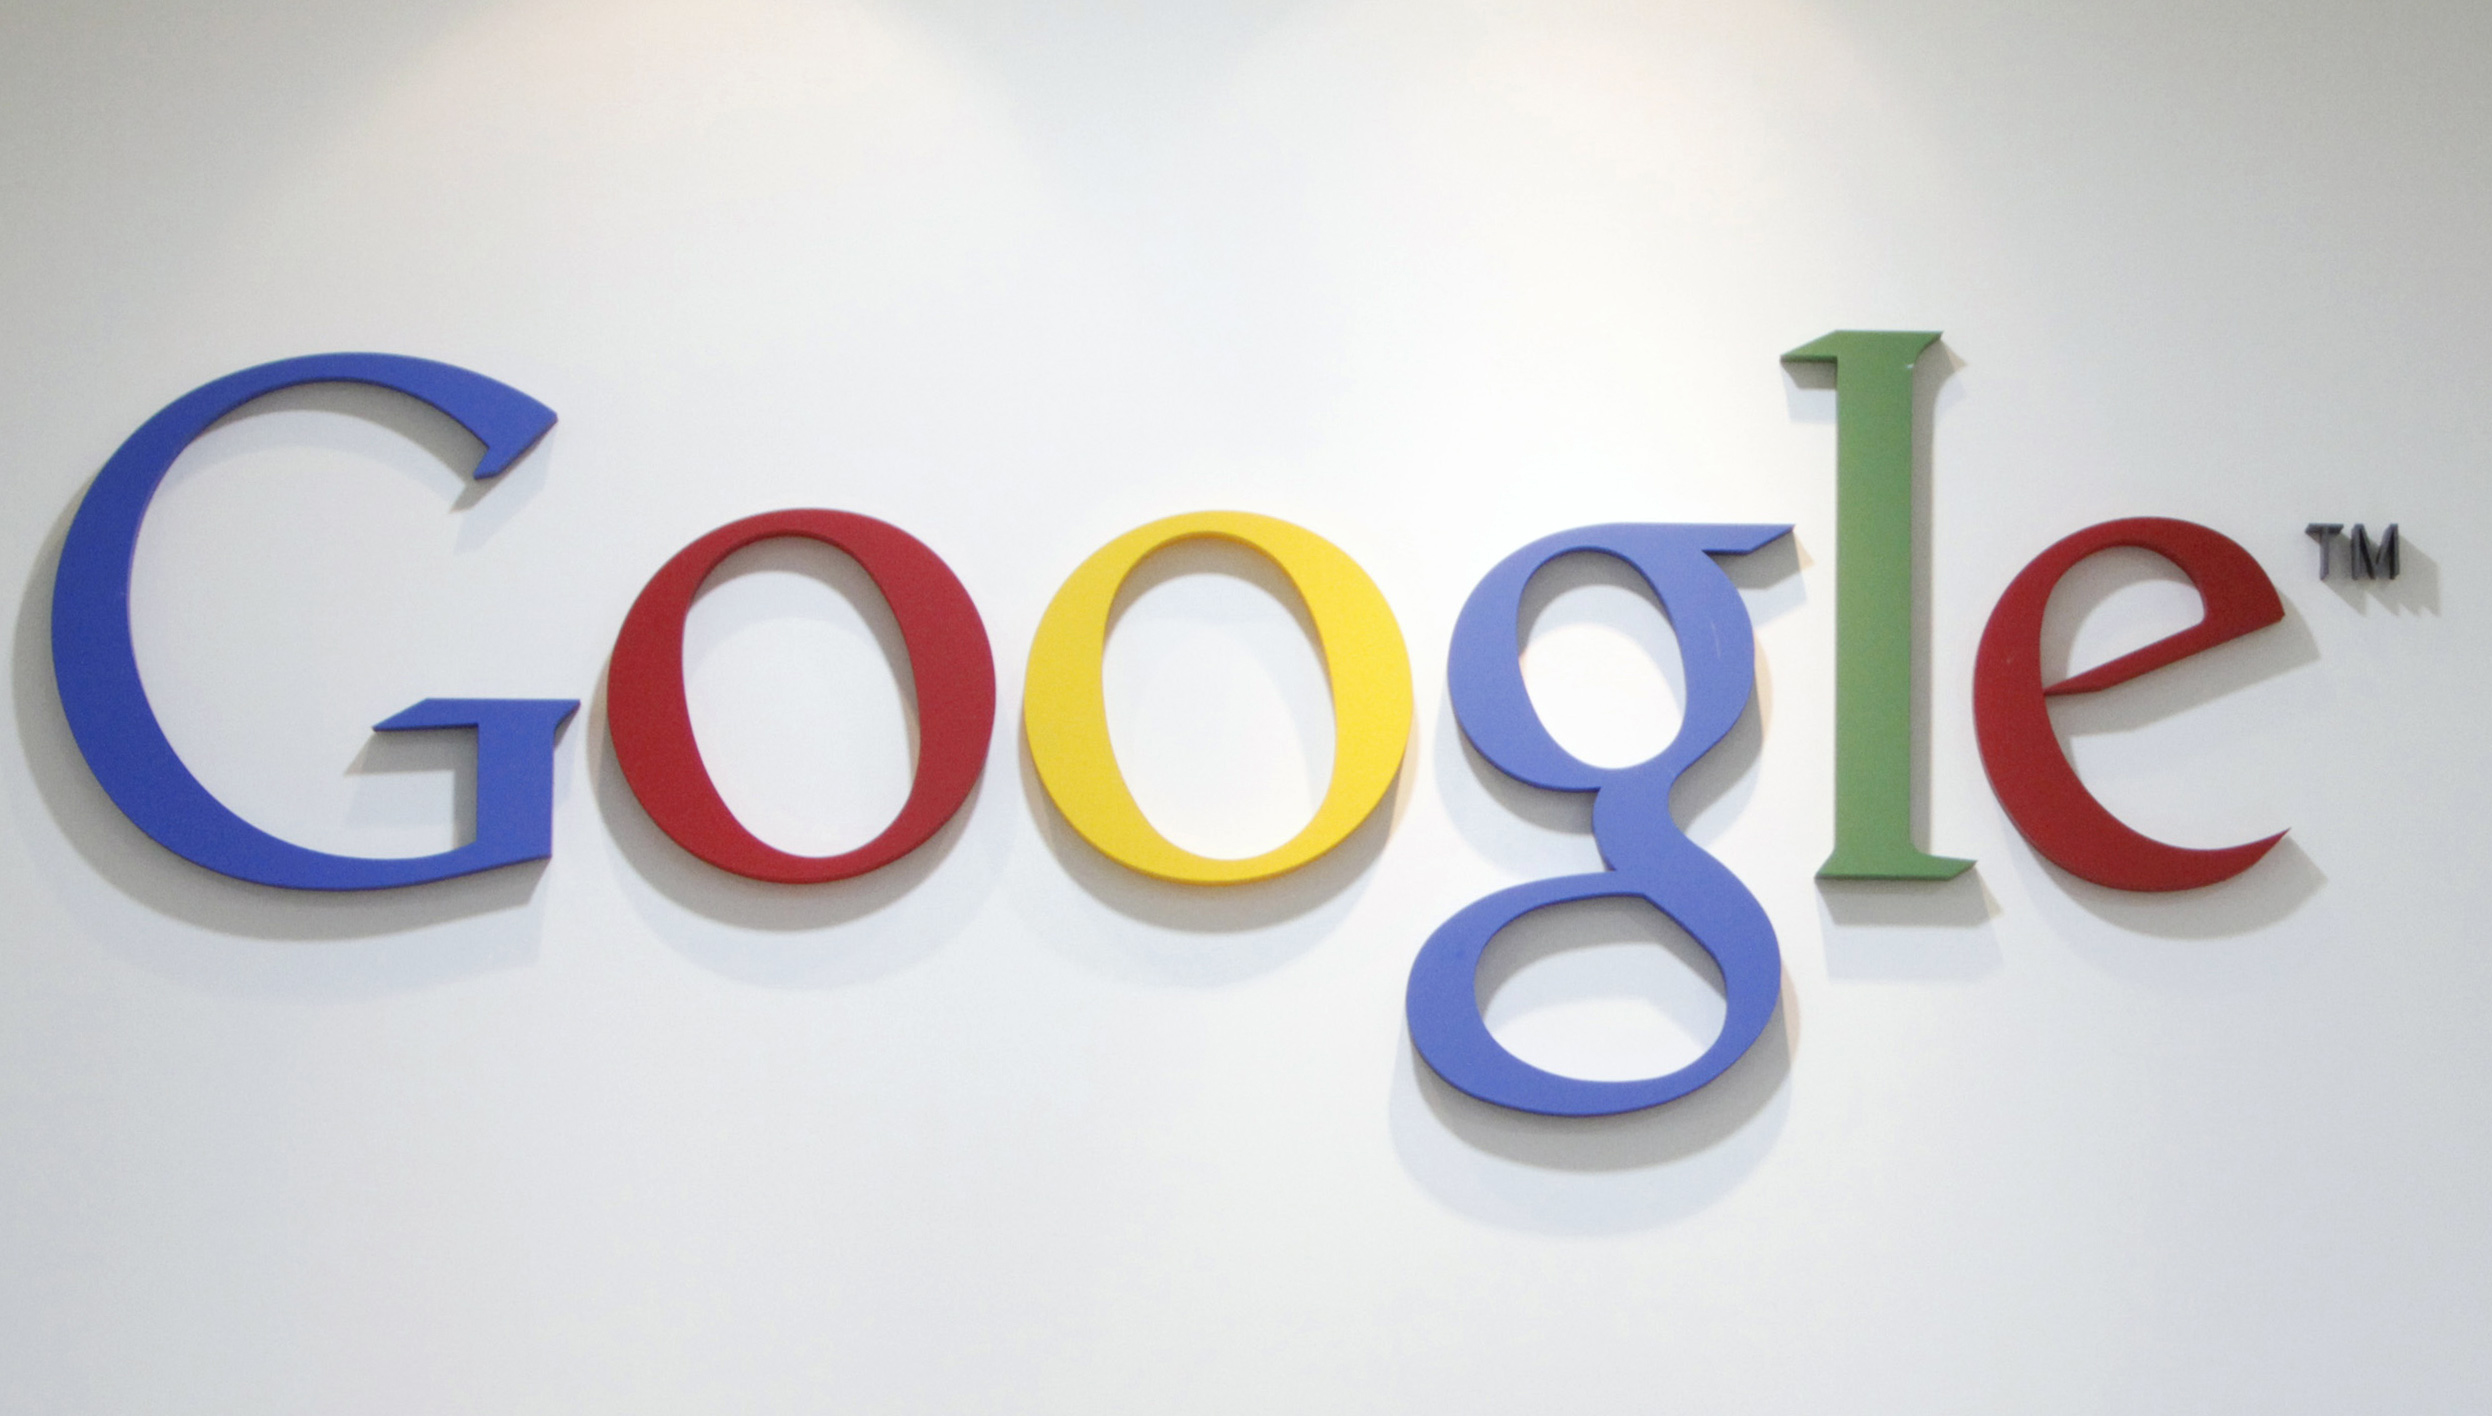 Google's logo at an office in Seoul on May 3, 2011